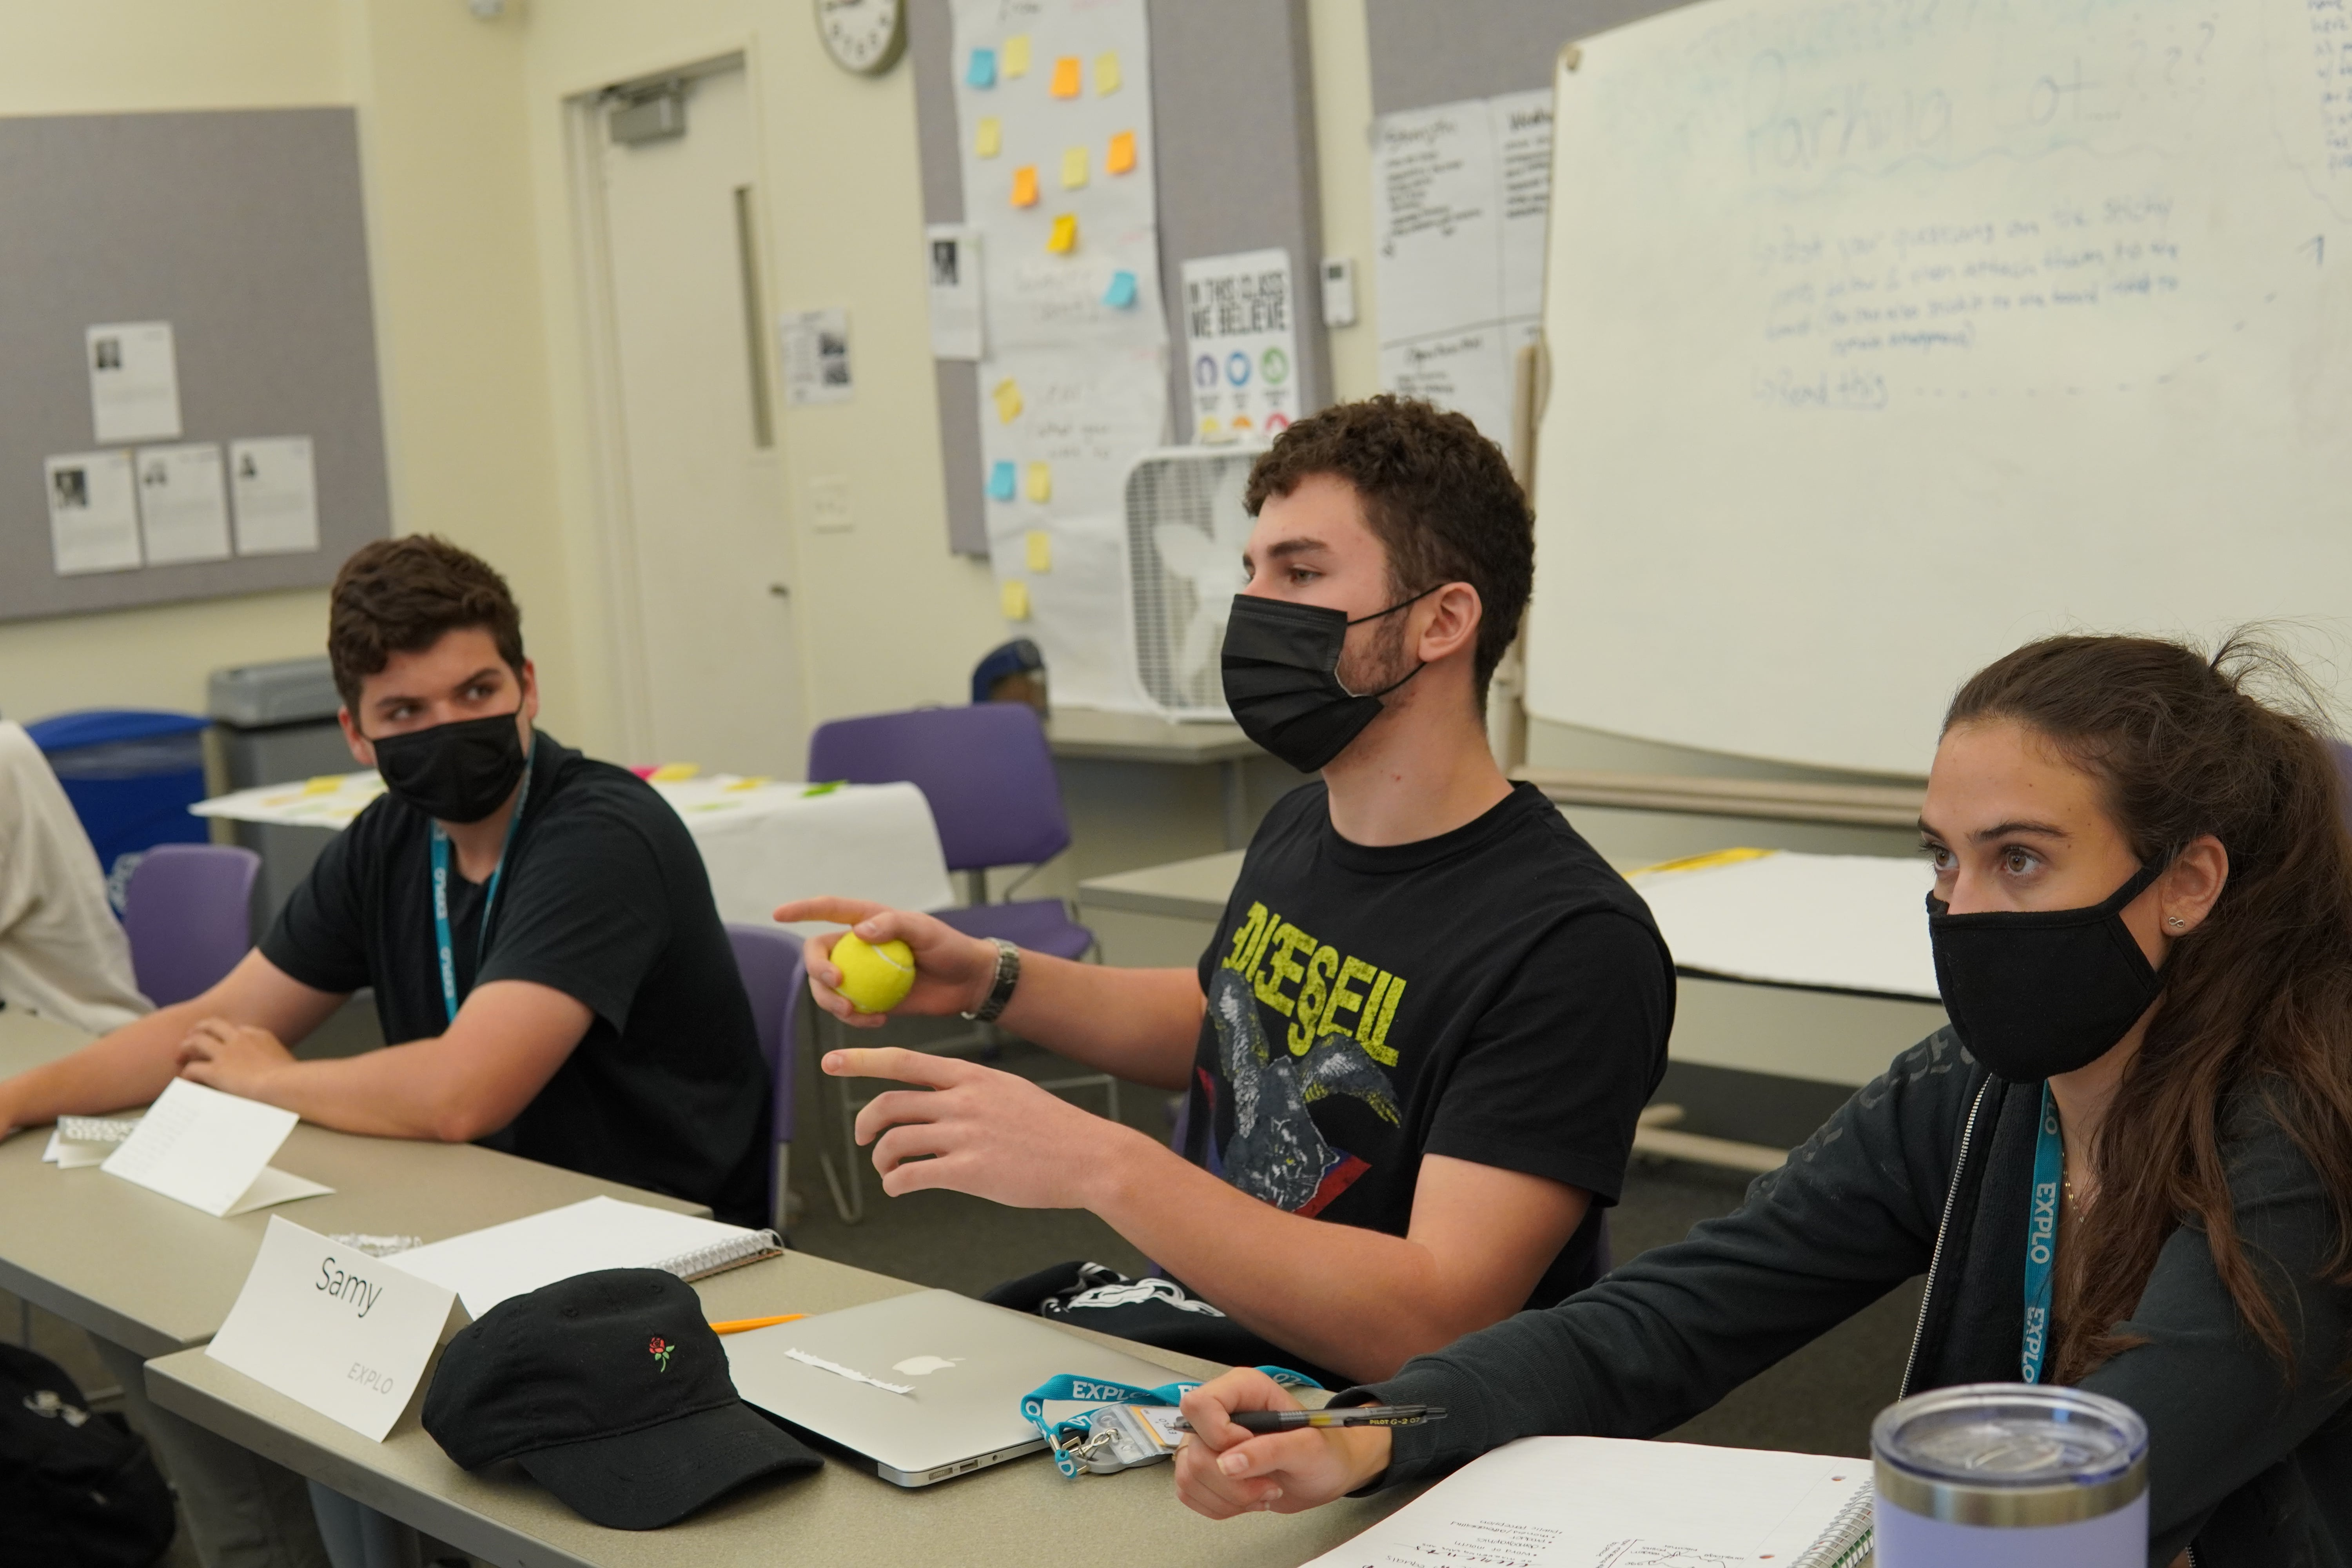 A student holds a tennis ball to denote them as the speaker as they outline their ideas for reaching a younger audience.